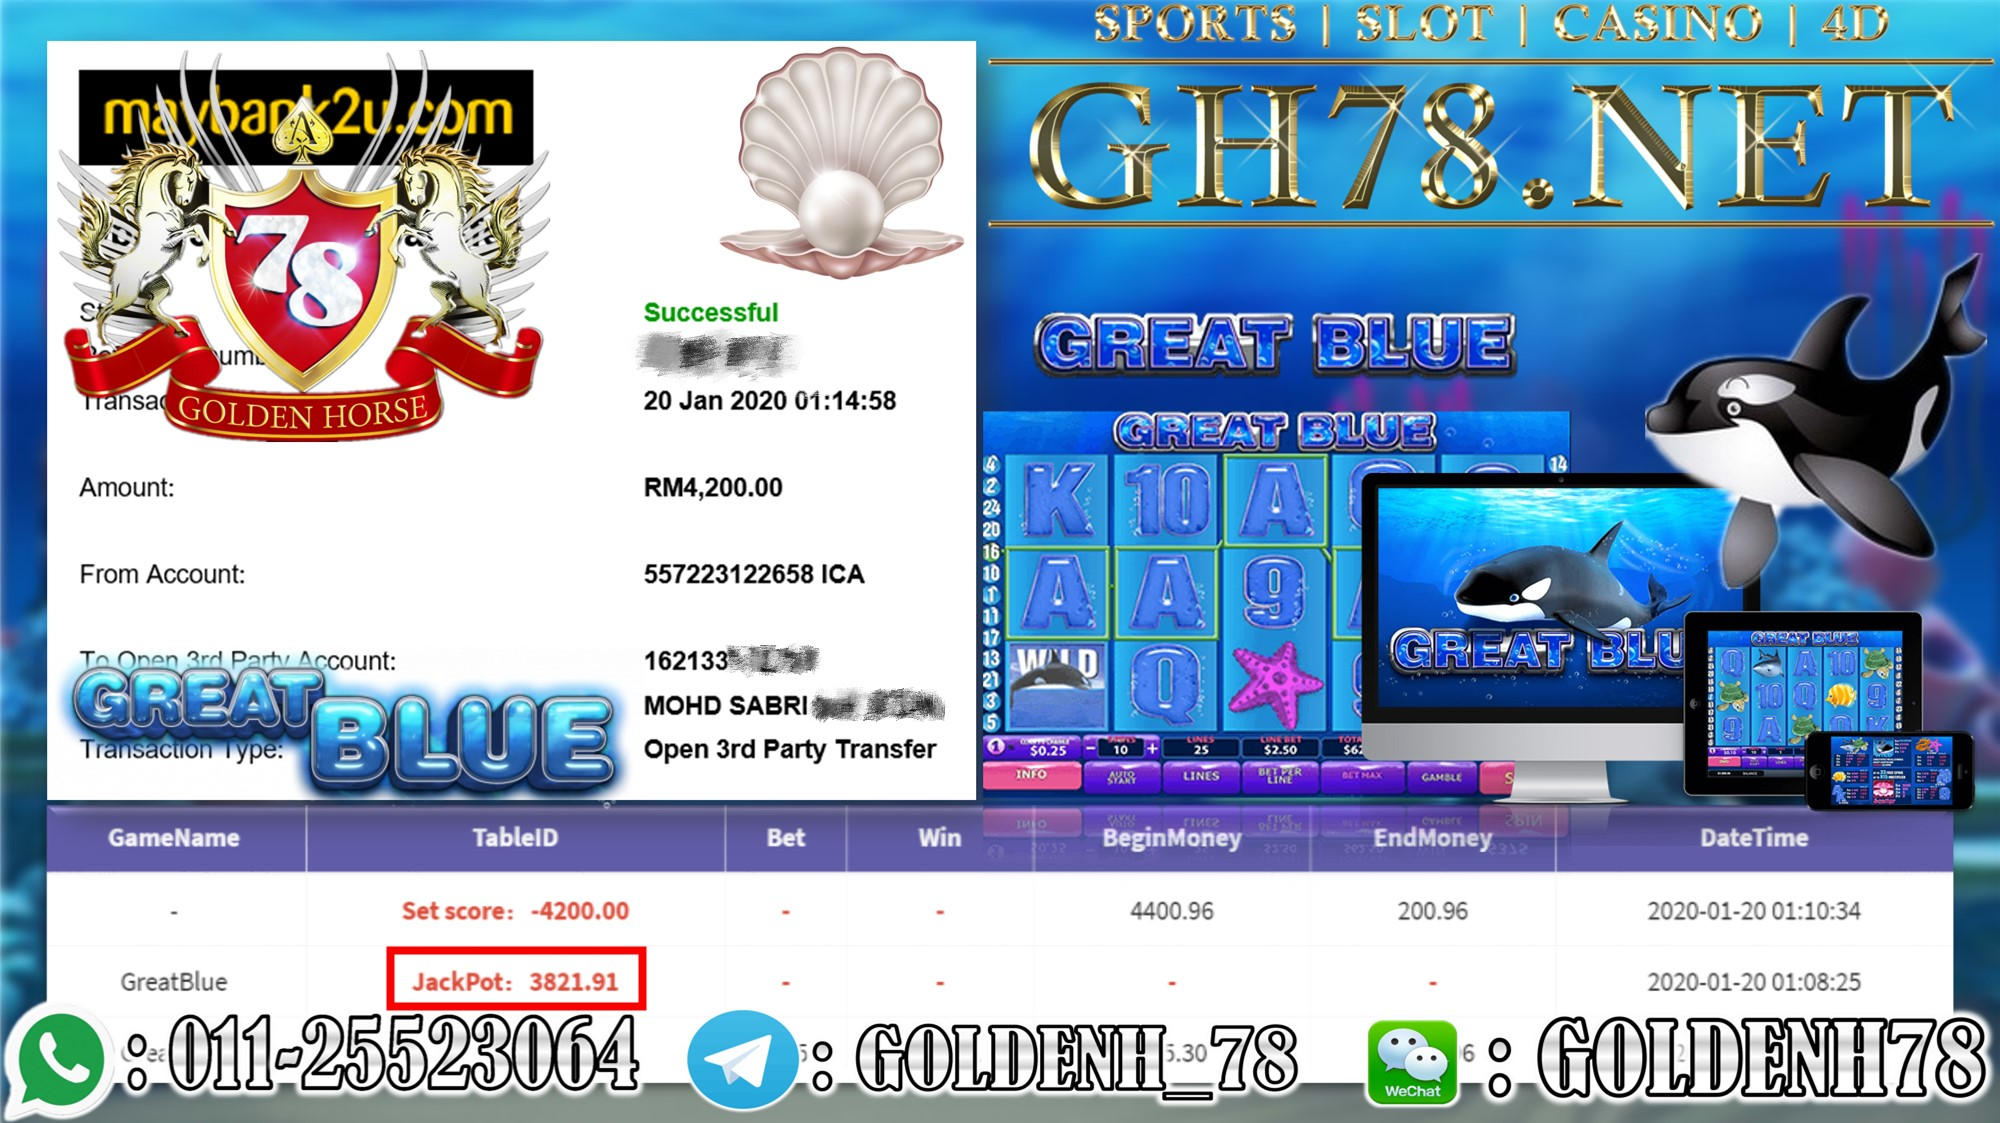 2020 NEW YEAR !!! MEMBER MAIN 918KISS, GREAT BLUE WITHDRAW RM4200 !!!